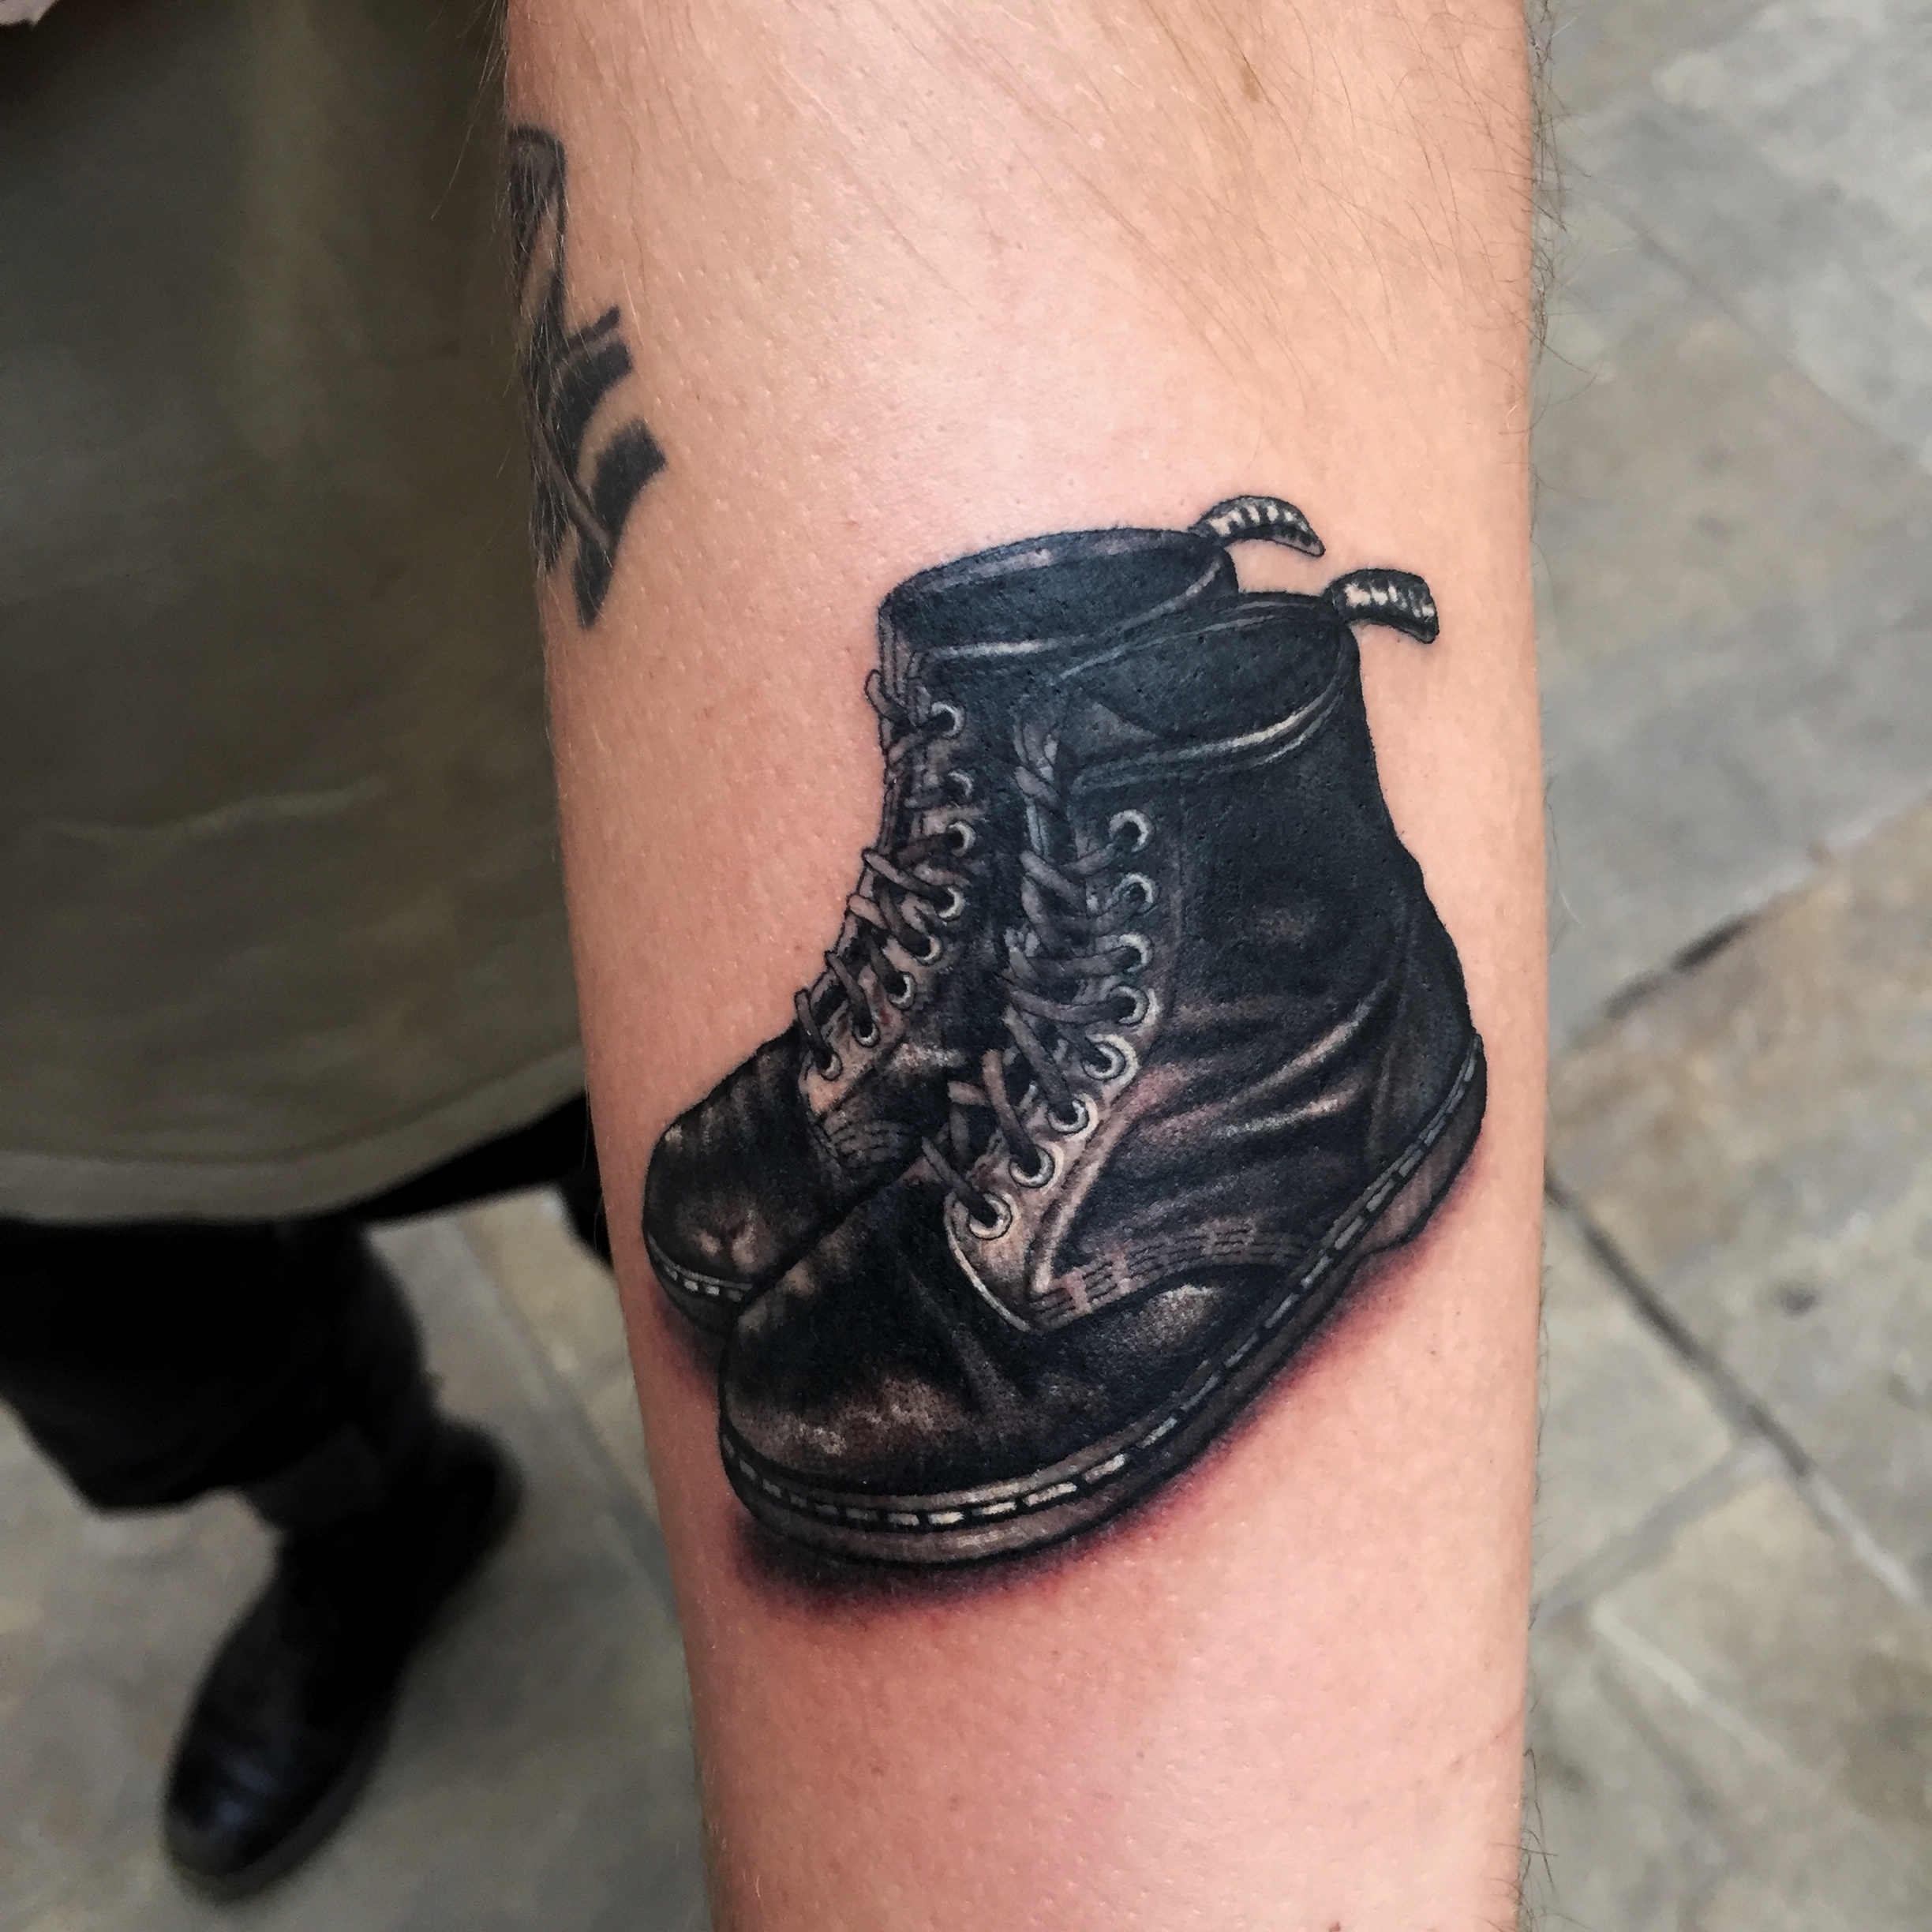 Doc Marten tattoo